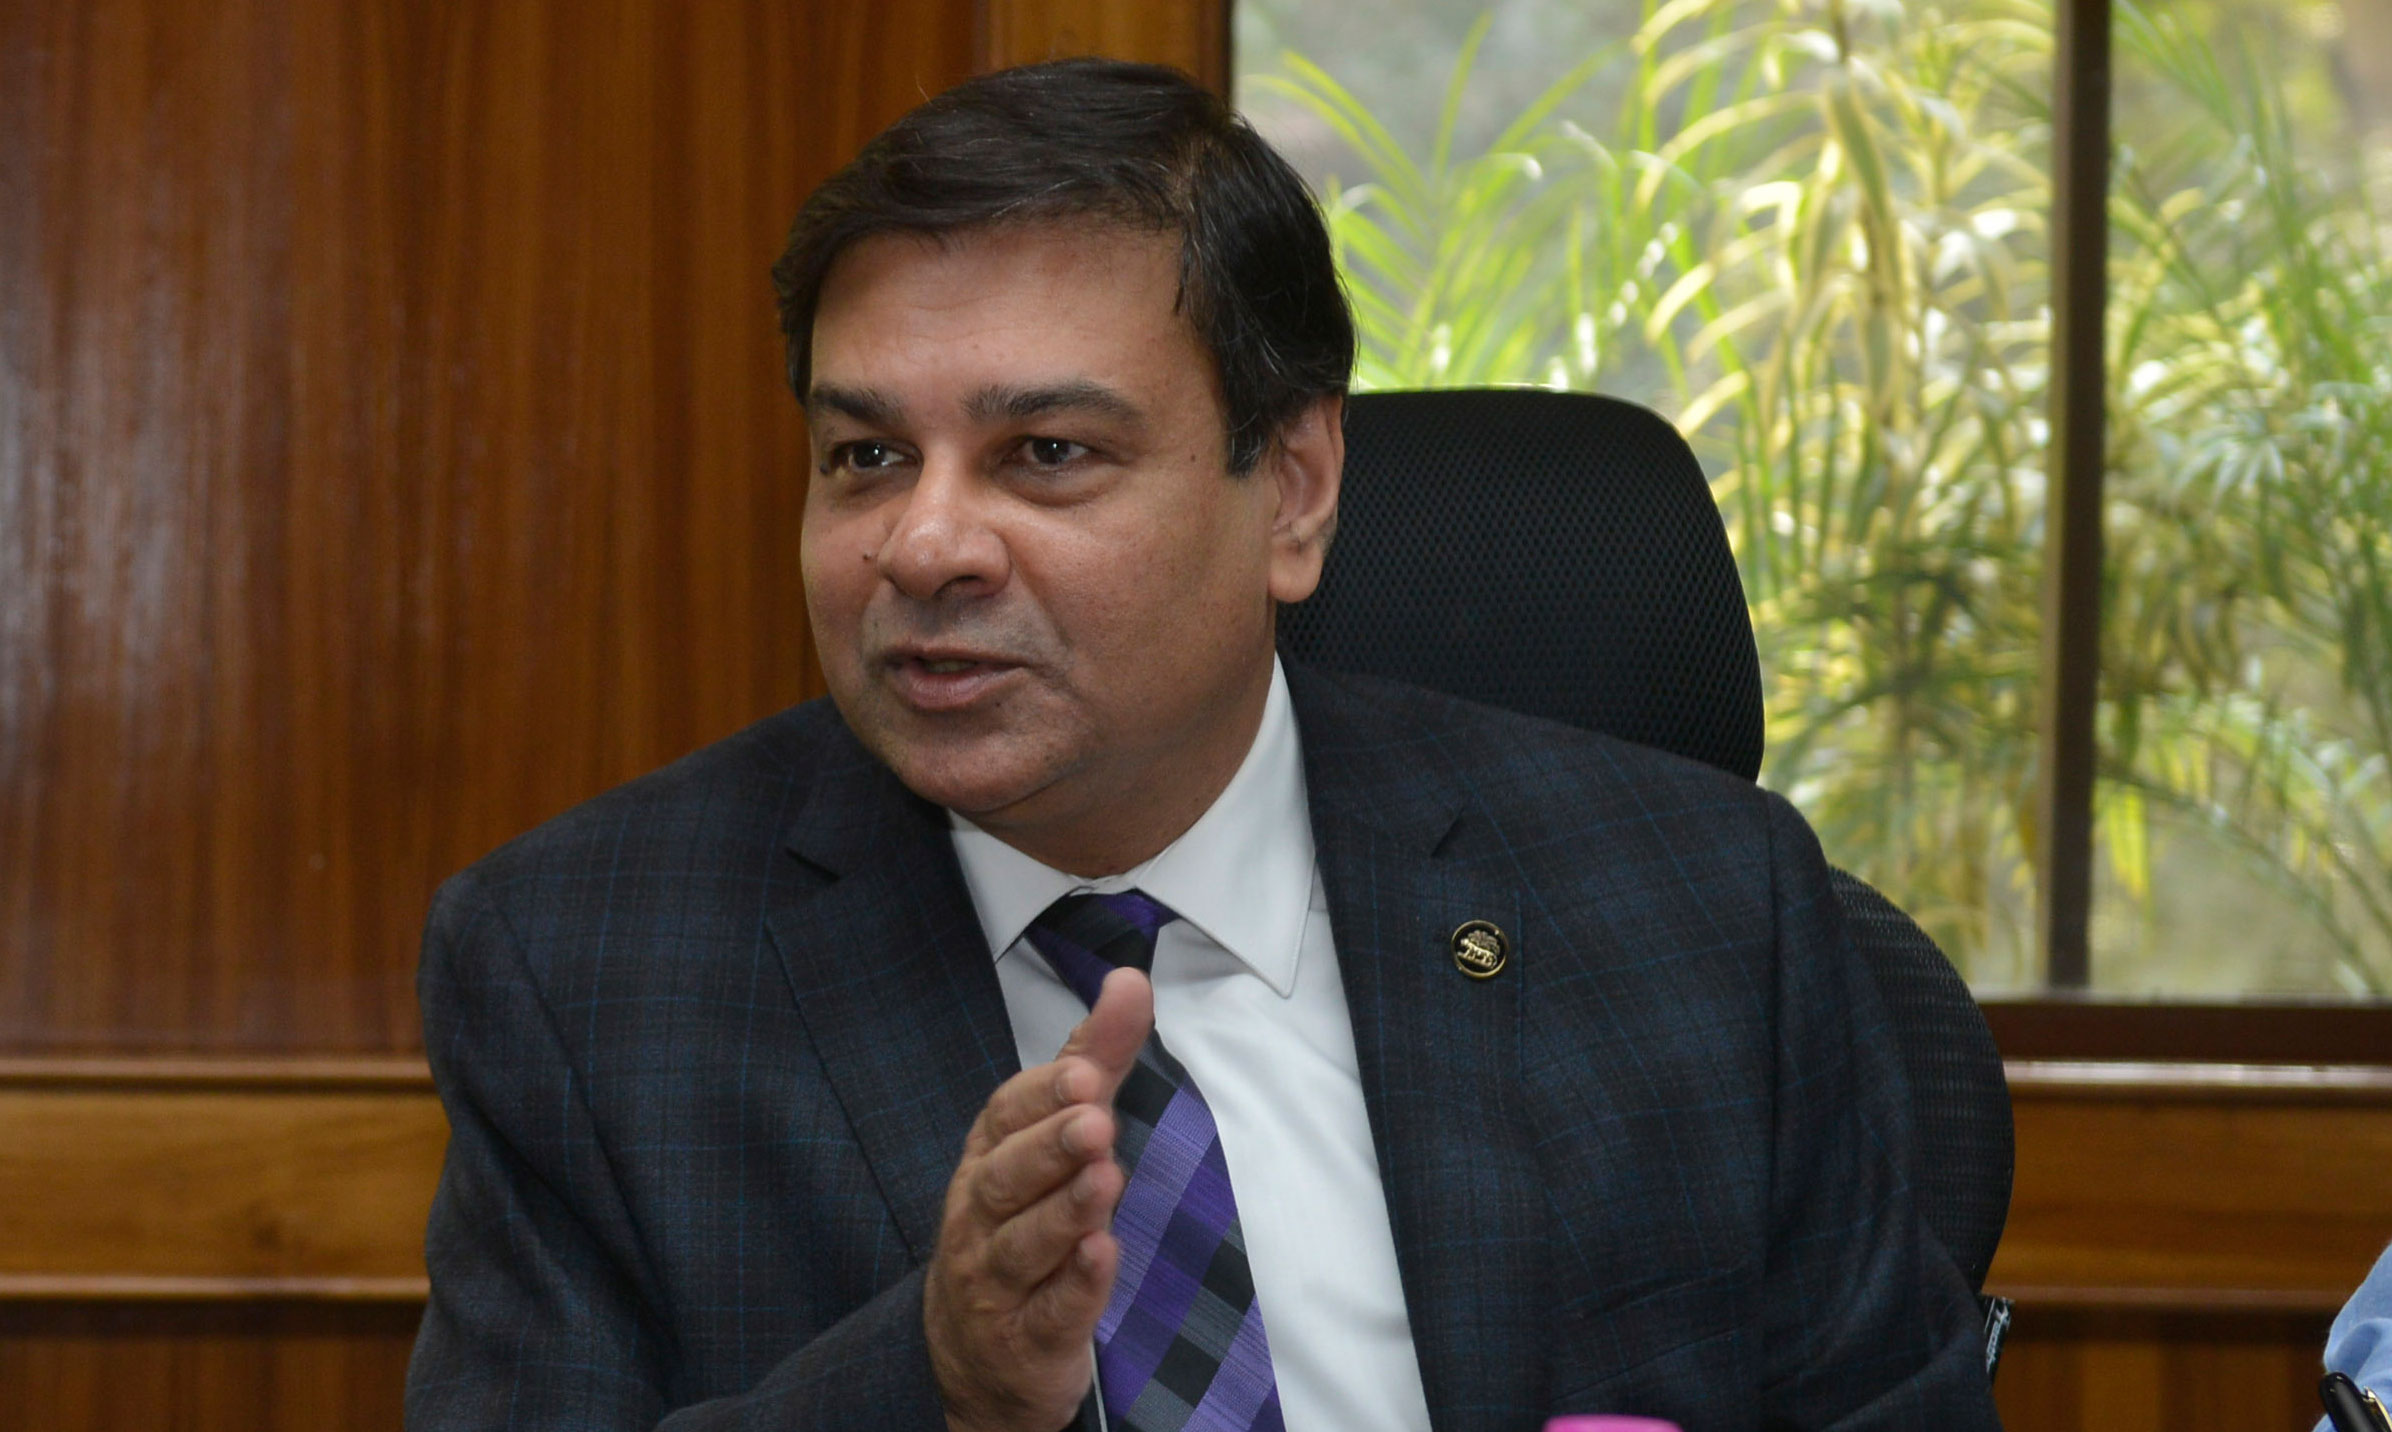 The refusal of the former RBI governor, Urjit Patel, to cut the policy rate because of fears of upside risks to lowball inflation rates had foreshadowed a grim battle with policy mavens in the finance ministry.